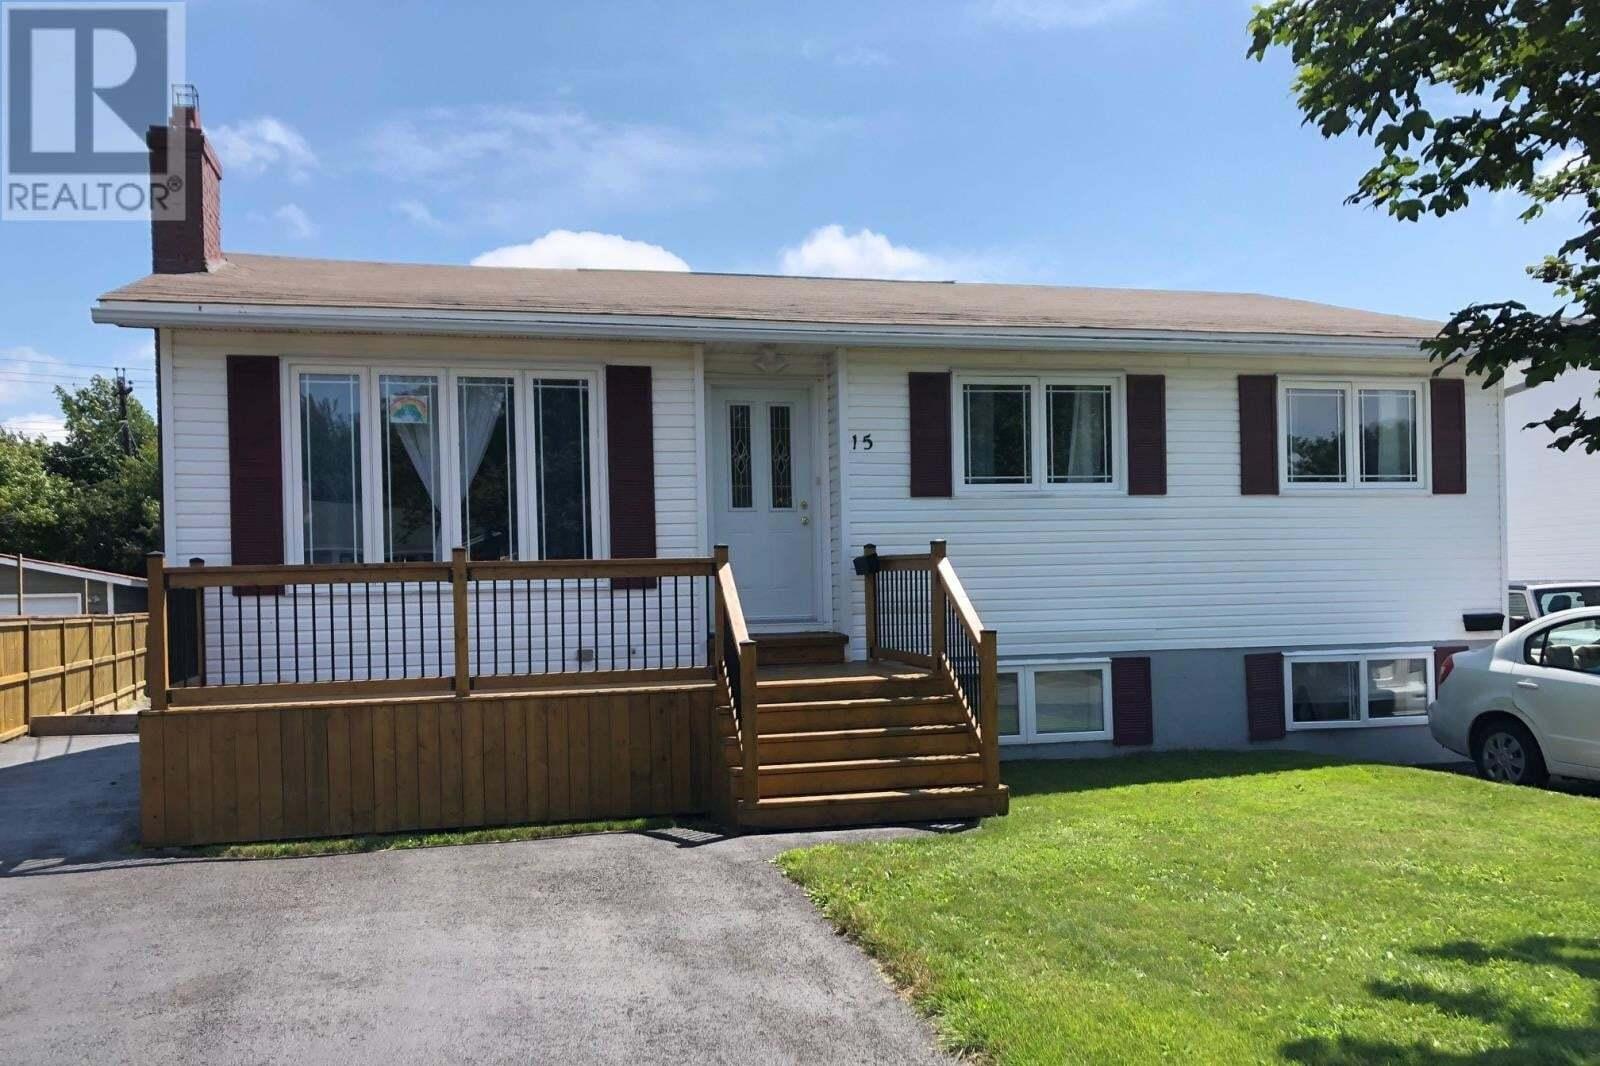 House for sale at 15 Smallwood Dr Mount Pearl Newfoundland - MLS: 1218545